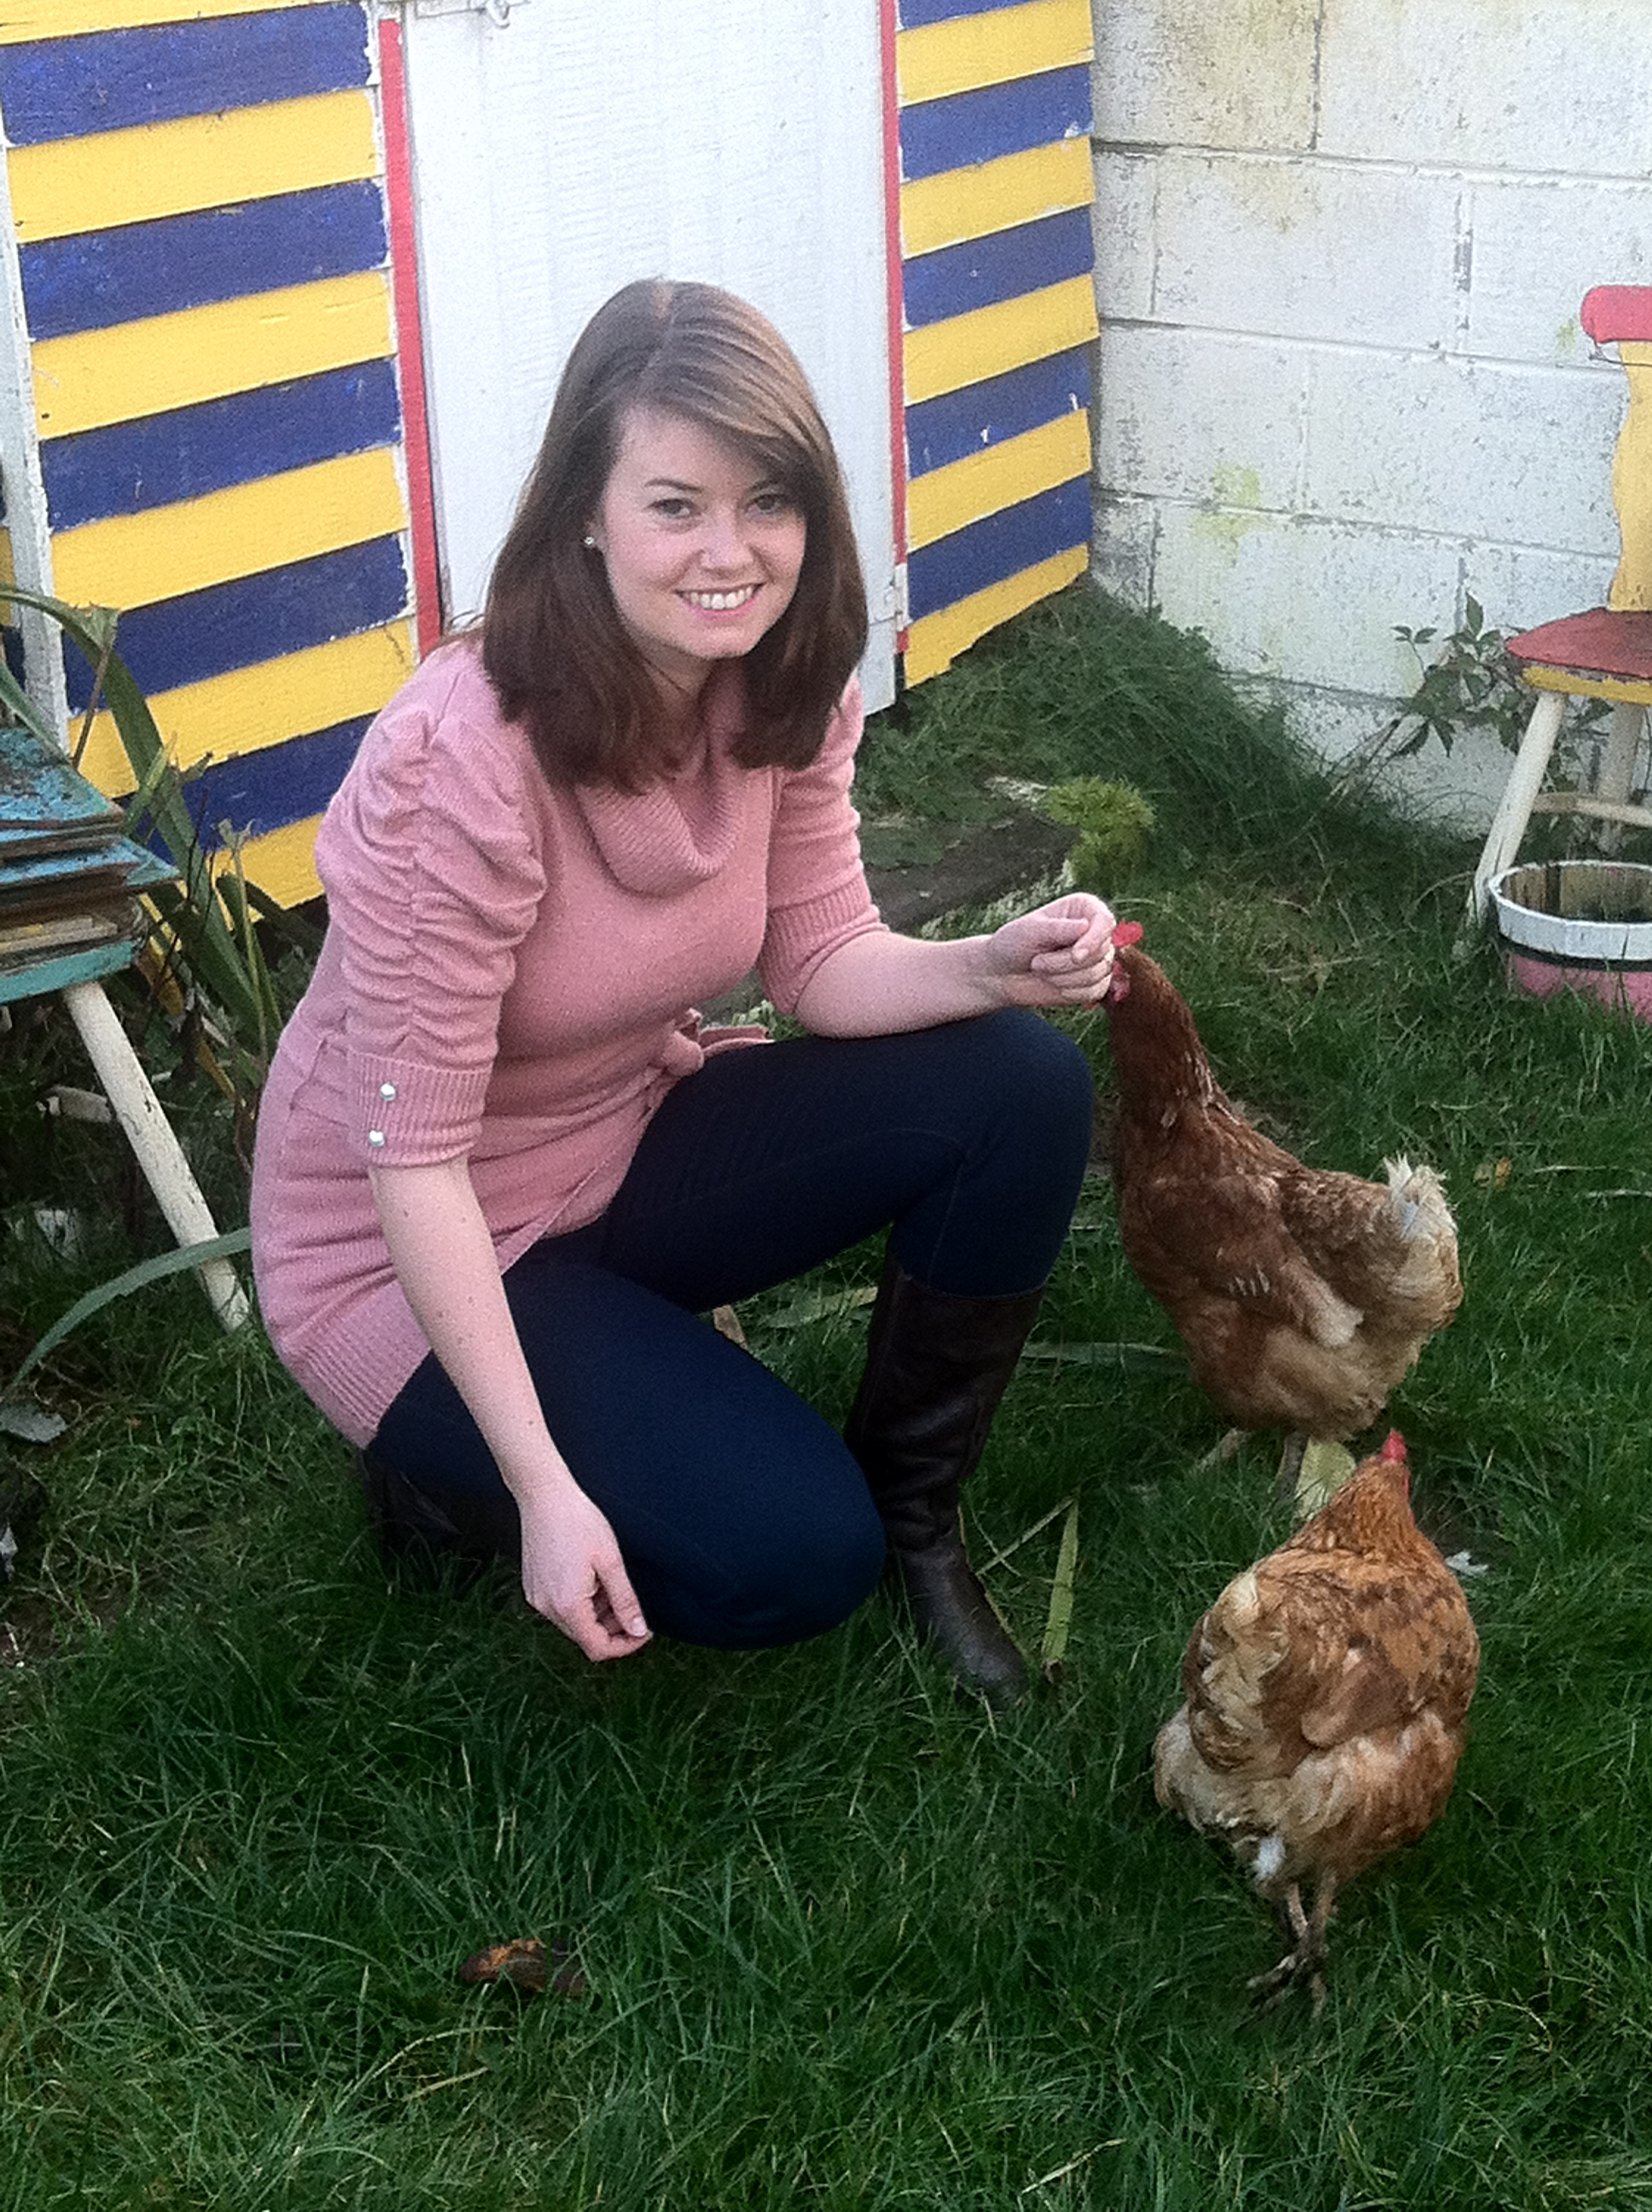 Getting and Owning Hens | A Home Made By Committee